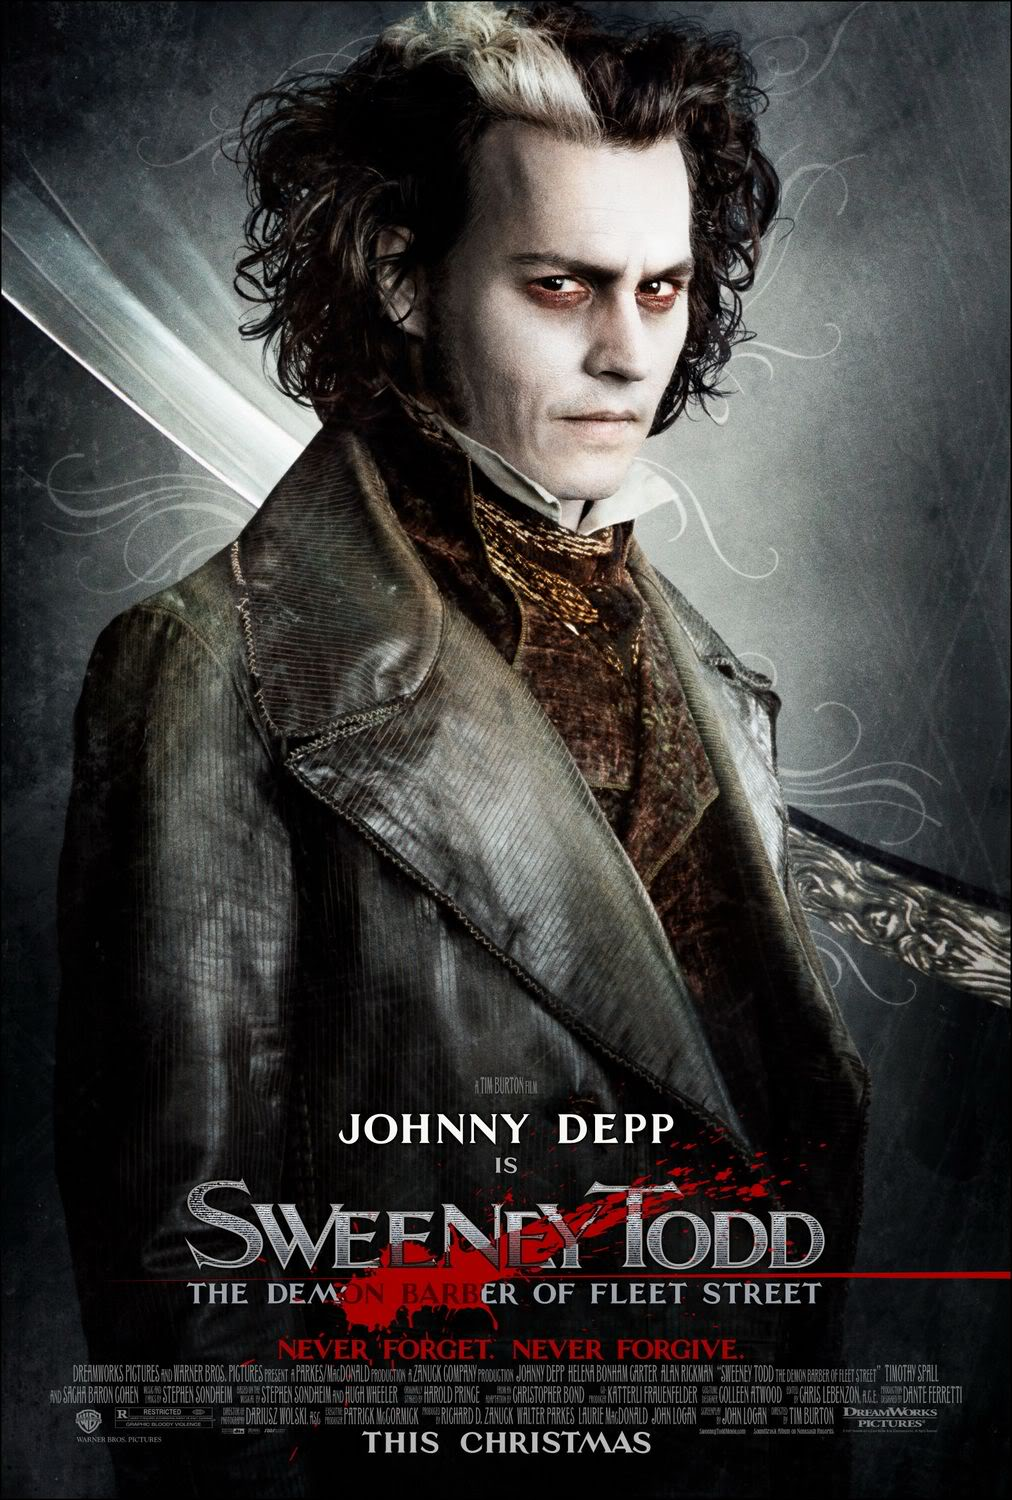 Sweeney Todd: The Demon Barber of Fleet Street movie